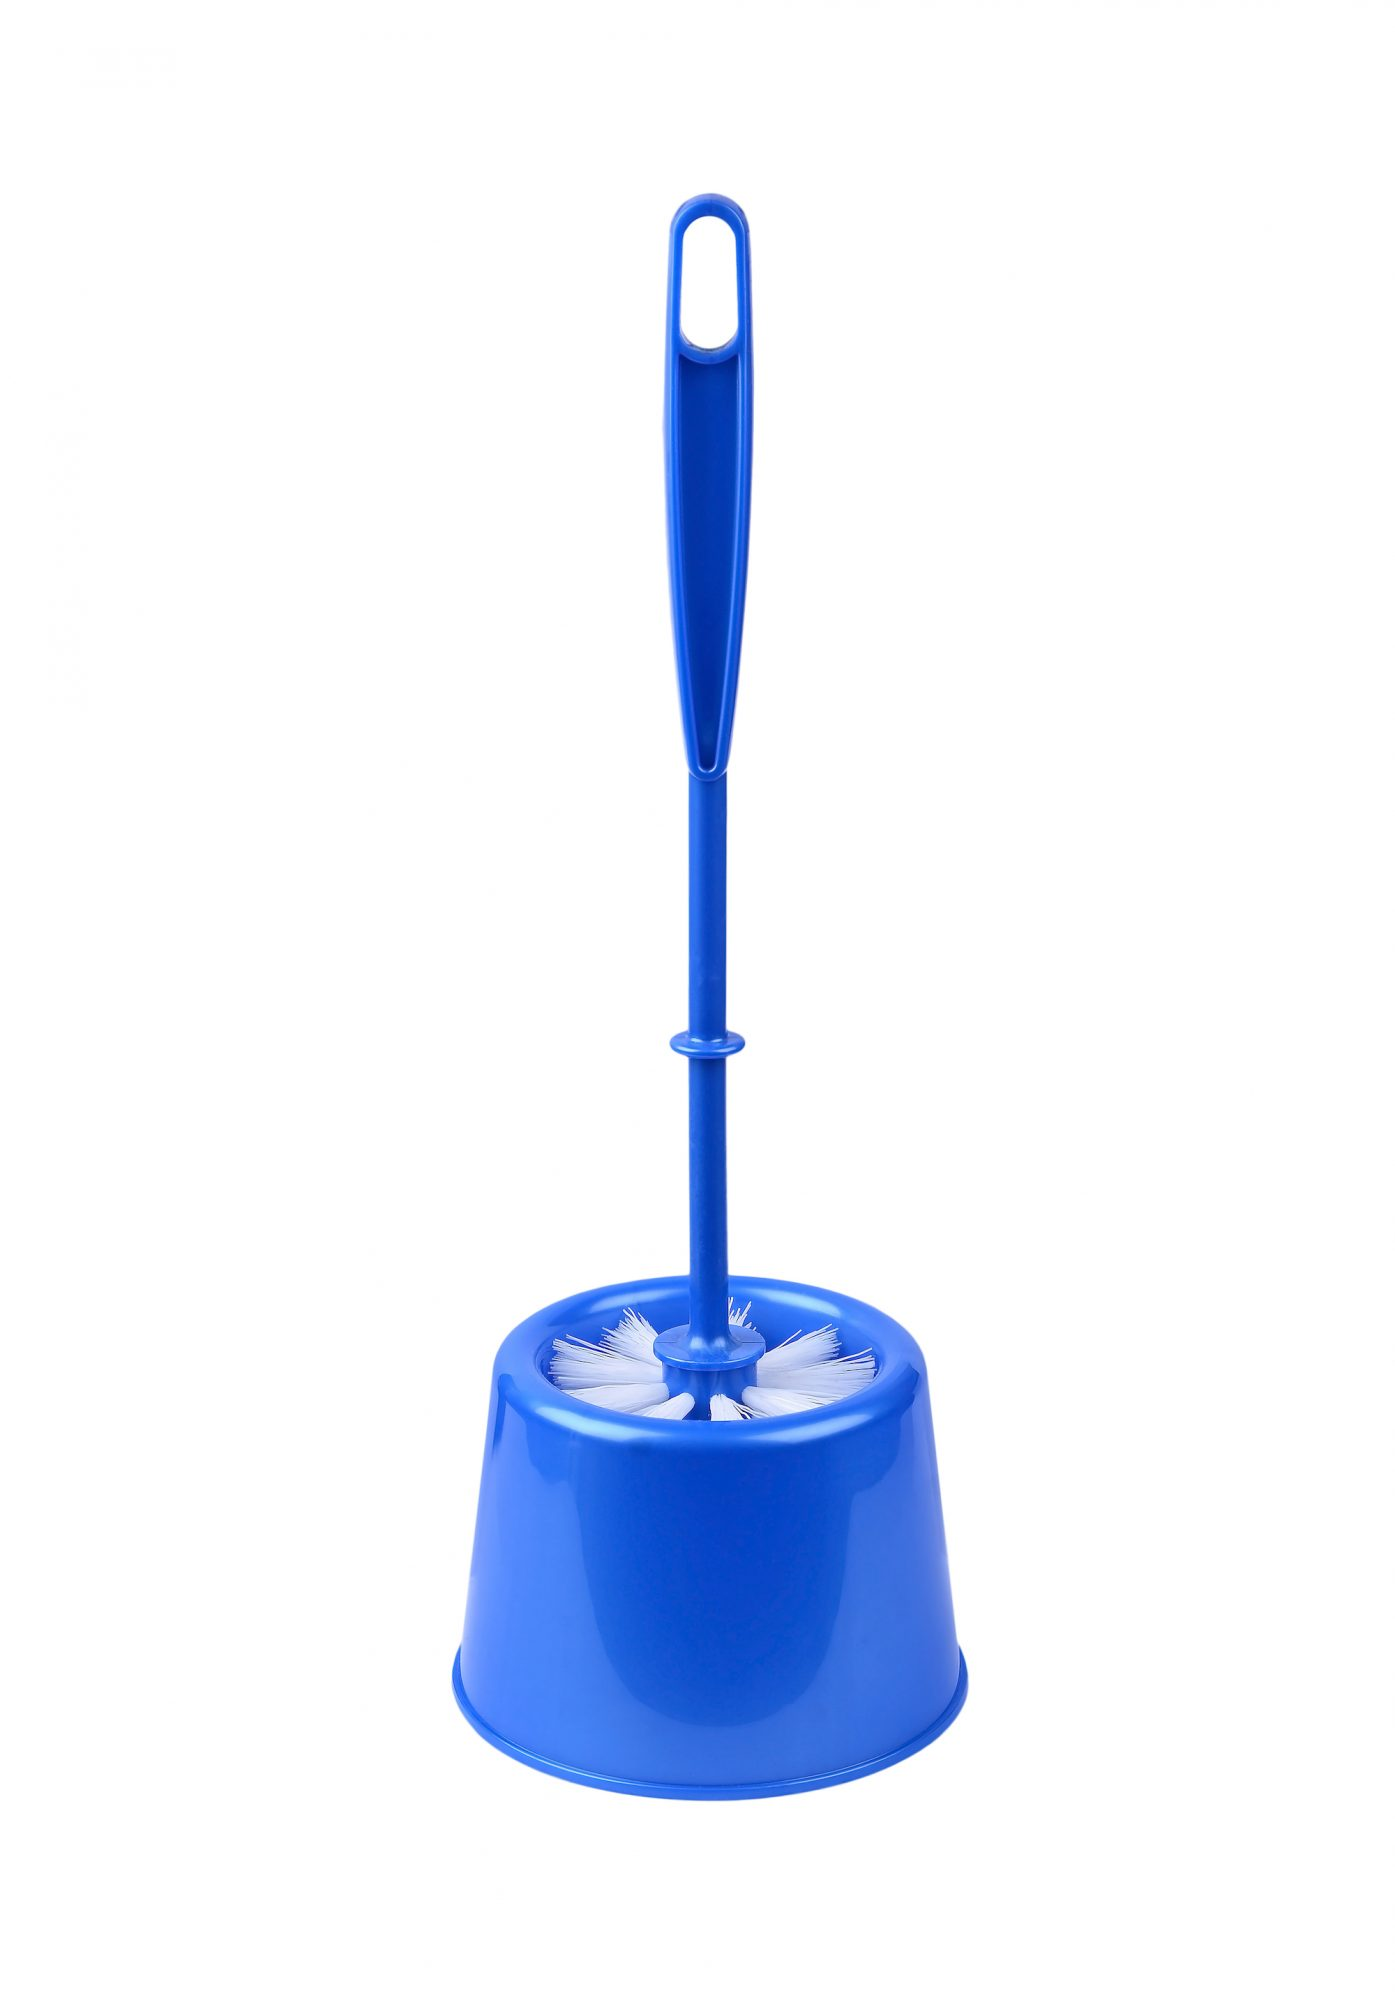 Professional Cleaners Secrets, Blue Toilet Brush